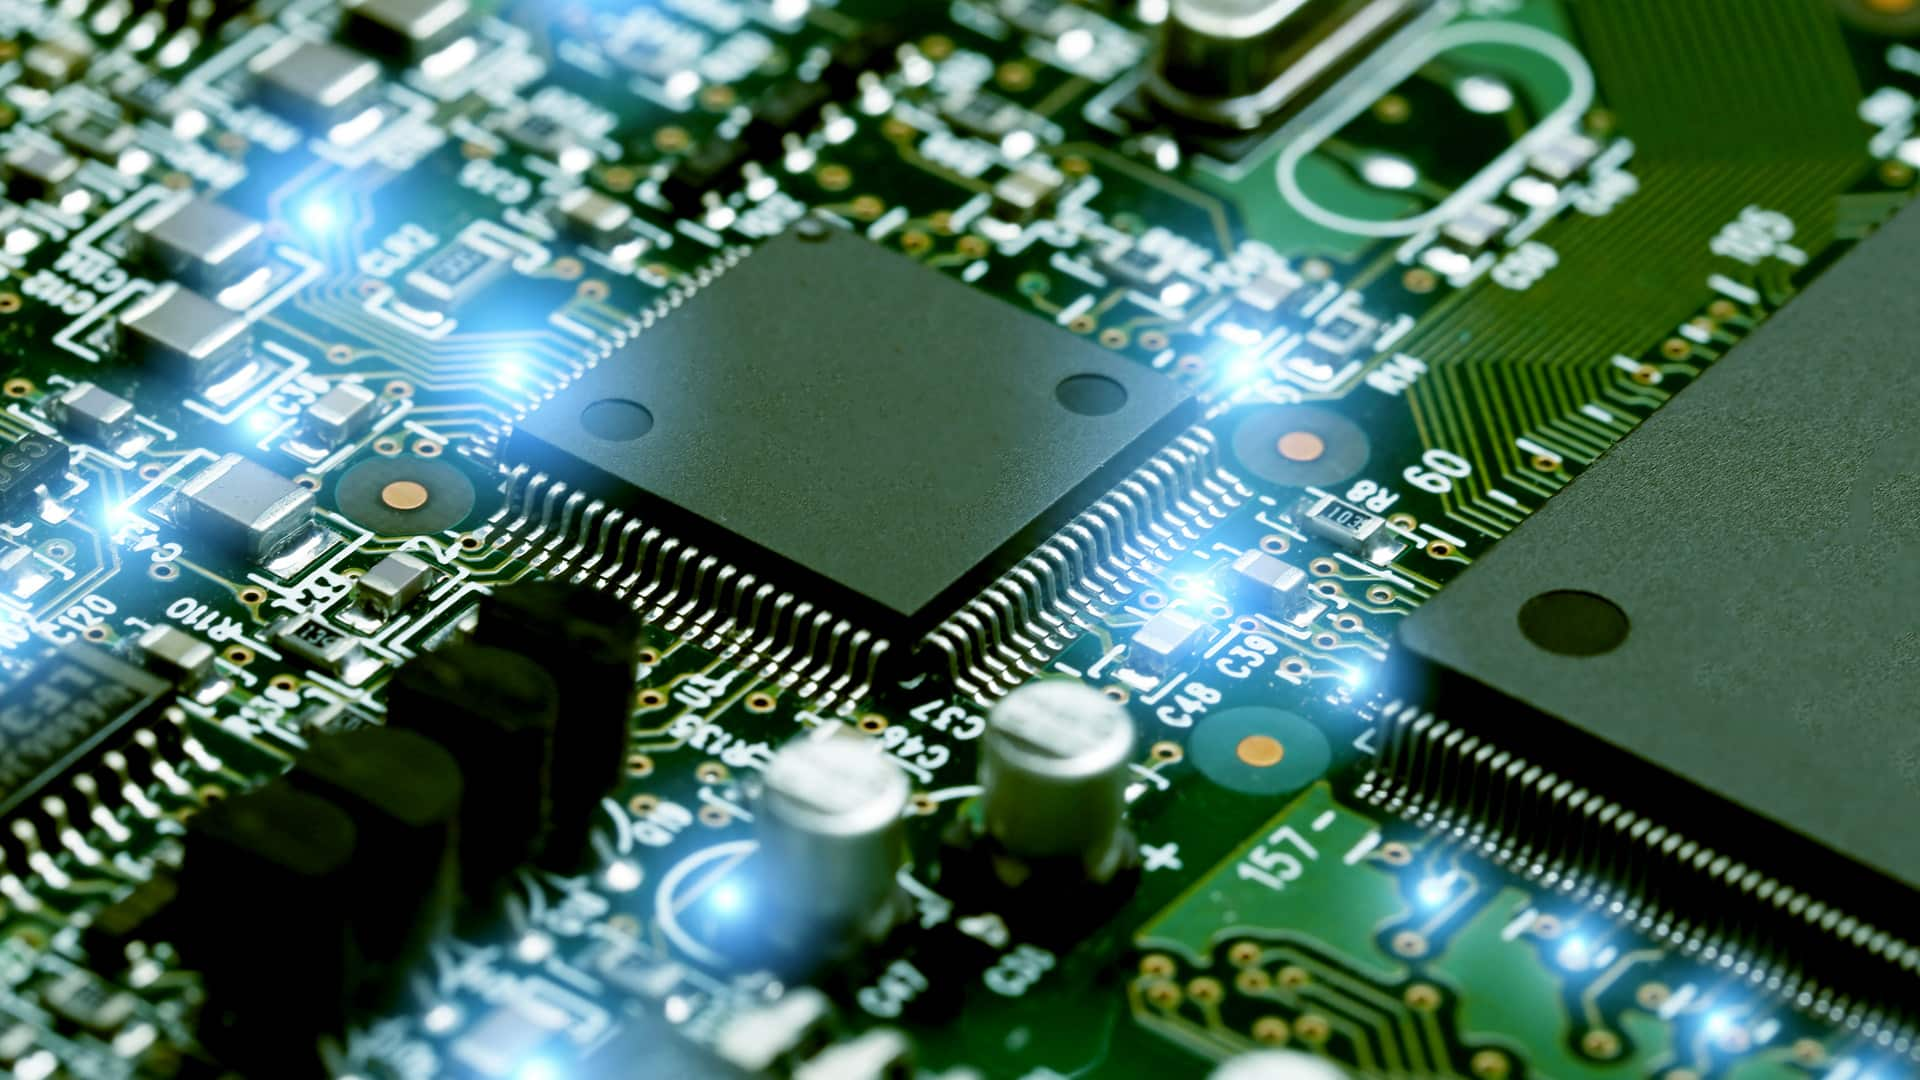 Govt expects Rs 18,000 cr investment in electronics sector